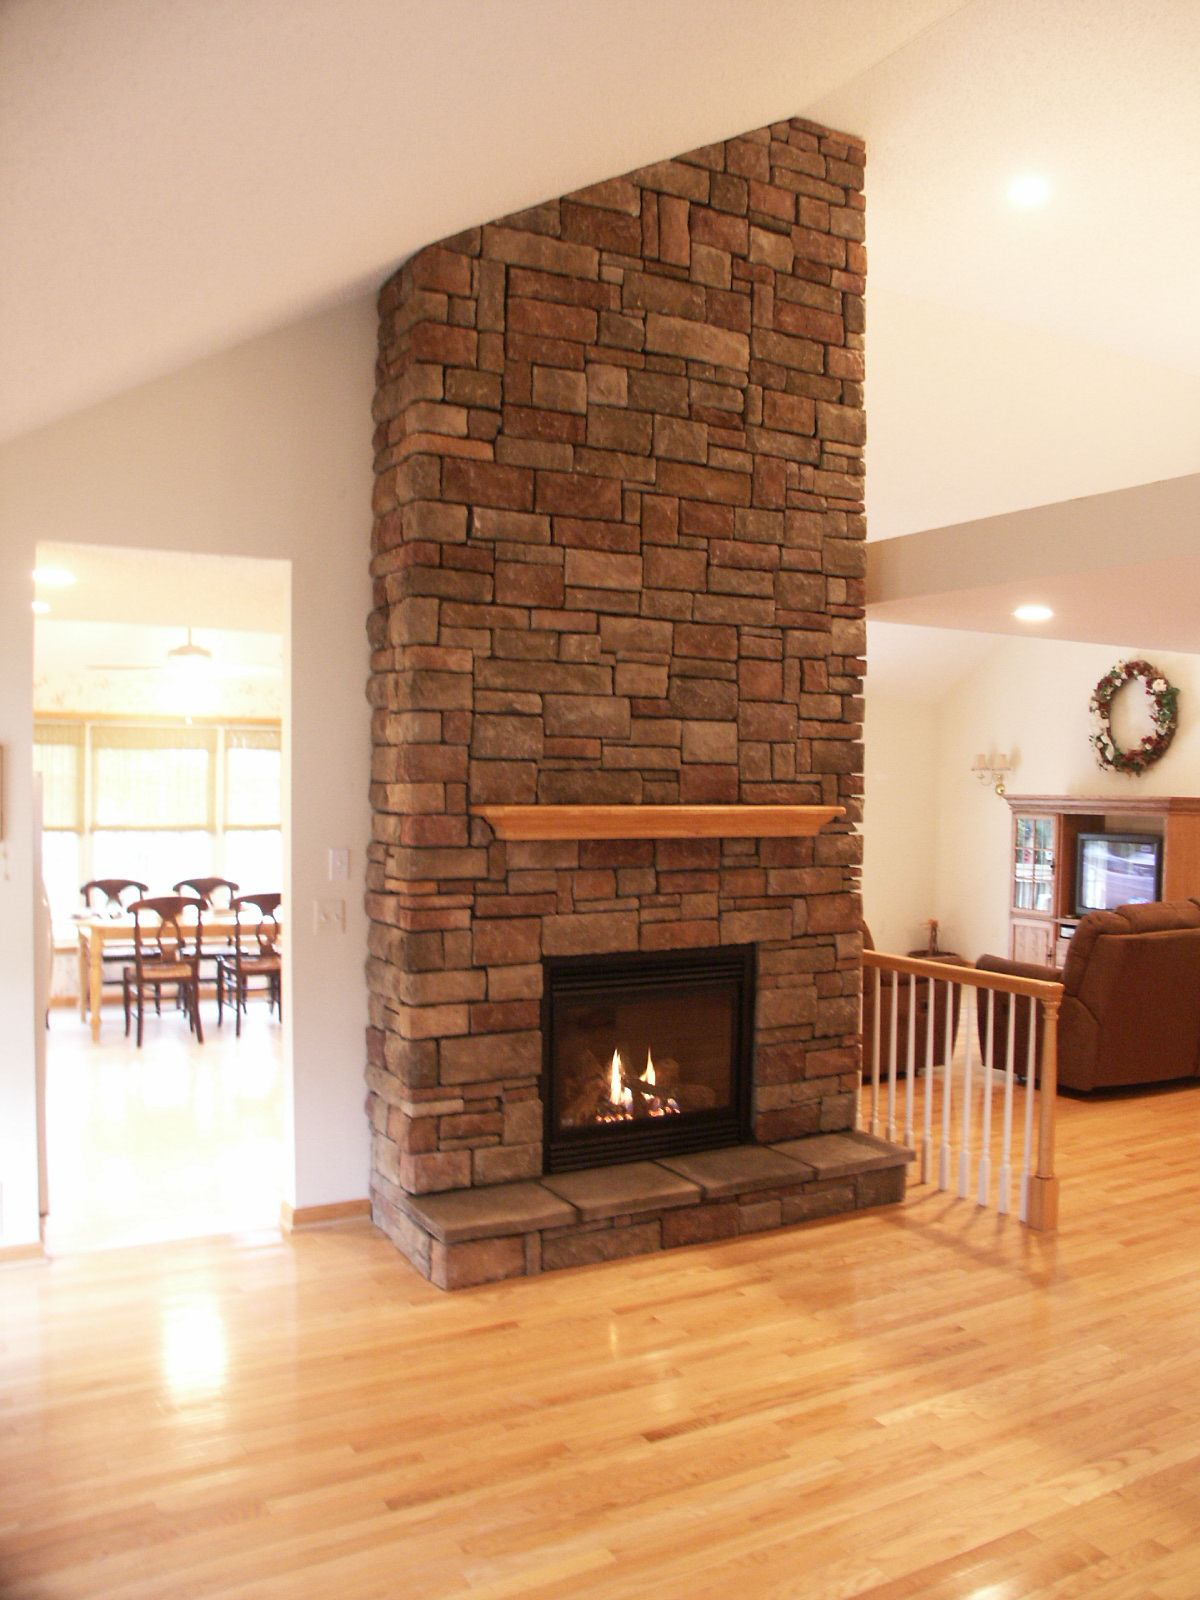 Faux Fireplace Insert Interior Design A New Gas Beautiful Fireplaces Stone Fireplace